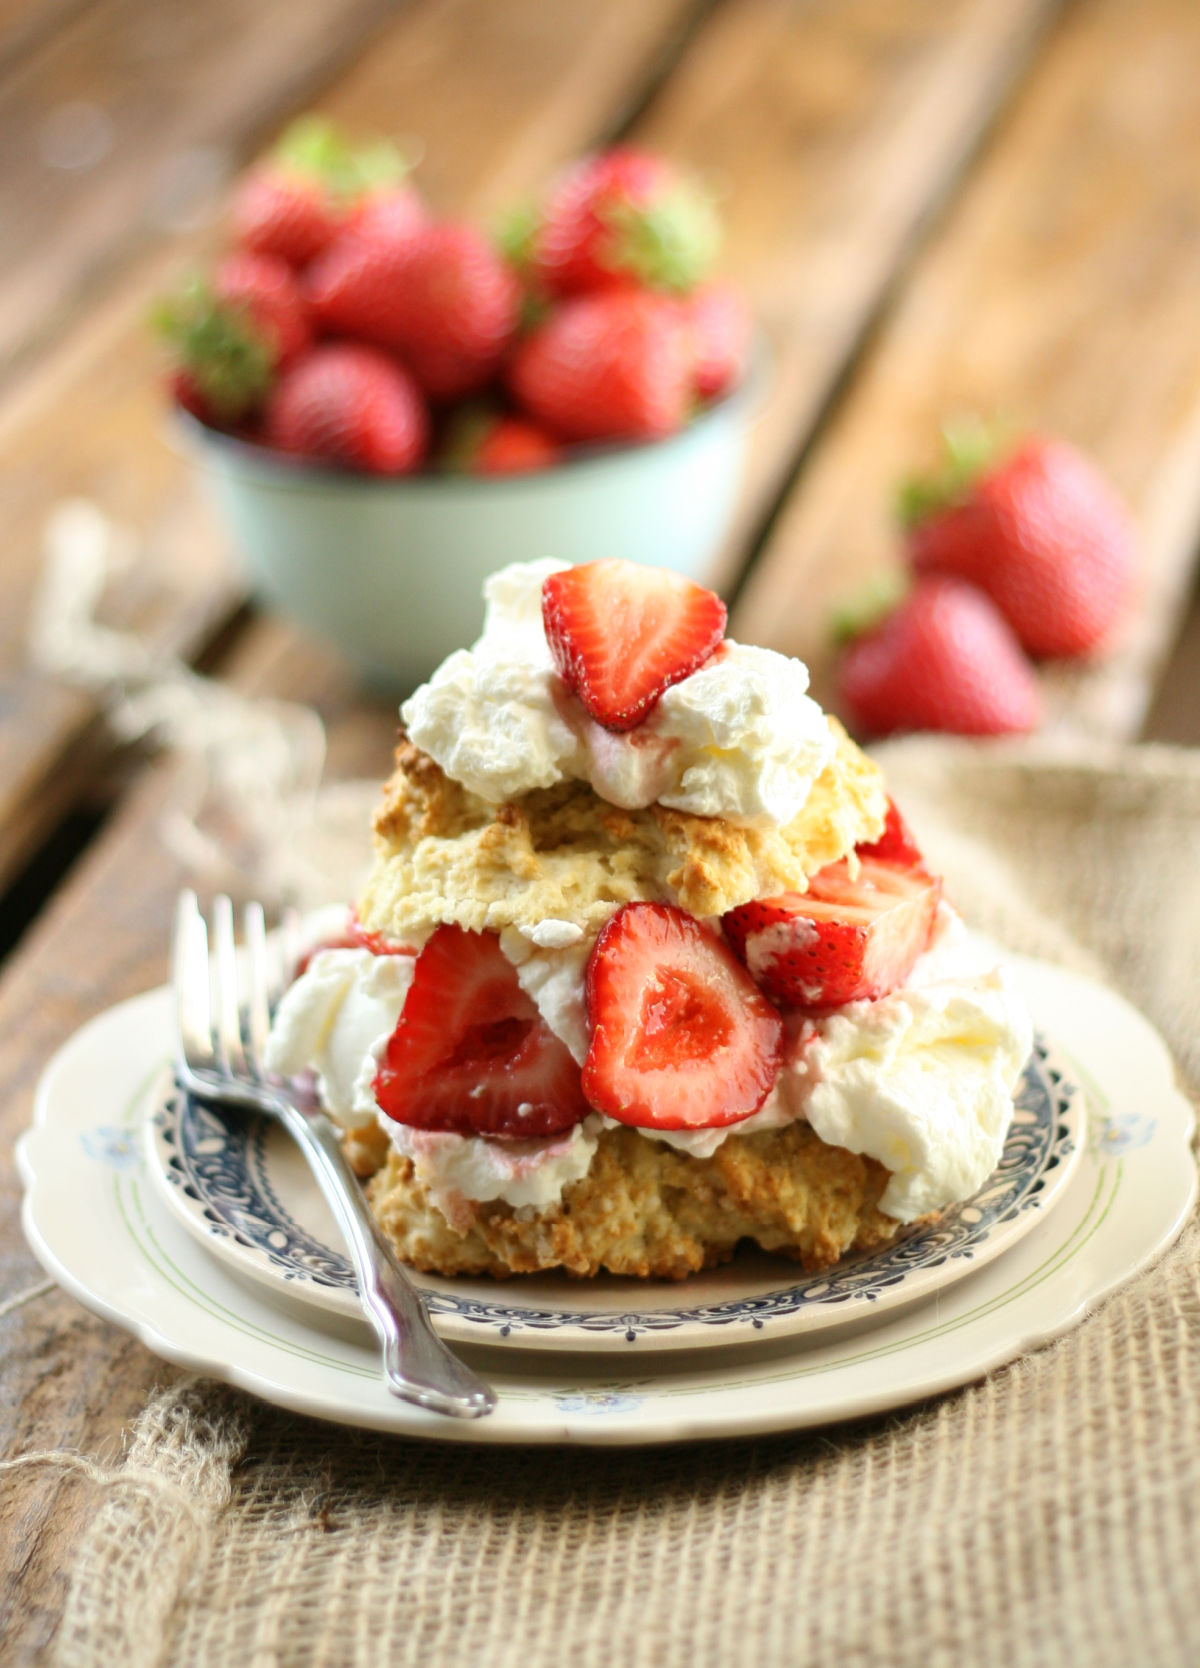 Strawberry shortcake biscuit cut in half with slices of strawberries and whipped cream on small white plate.